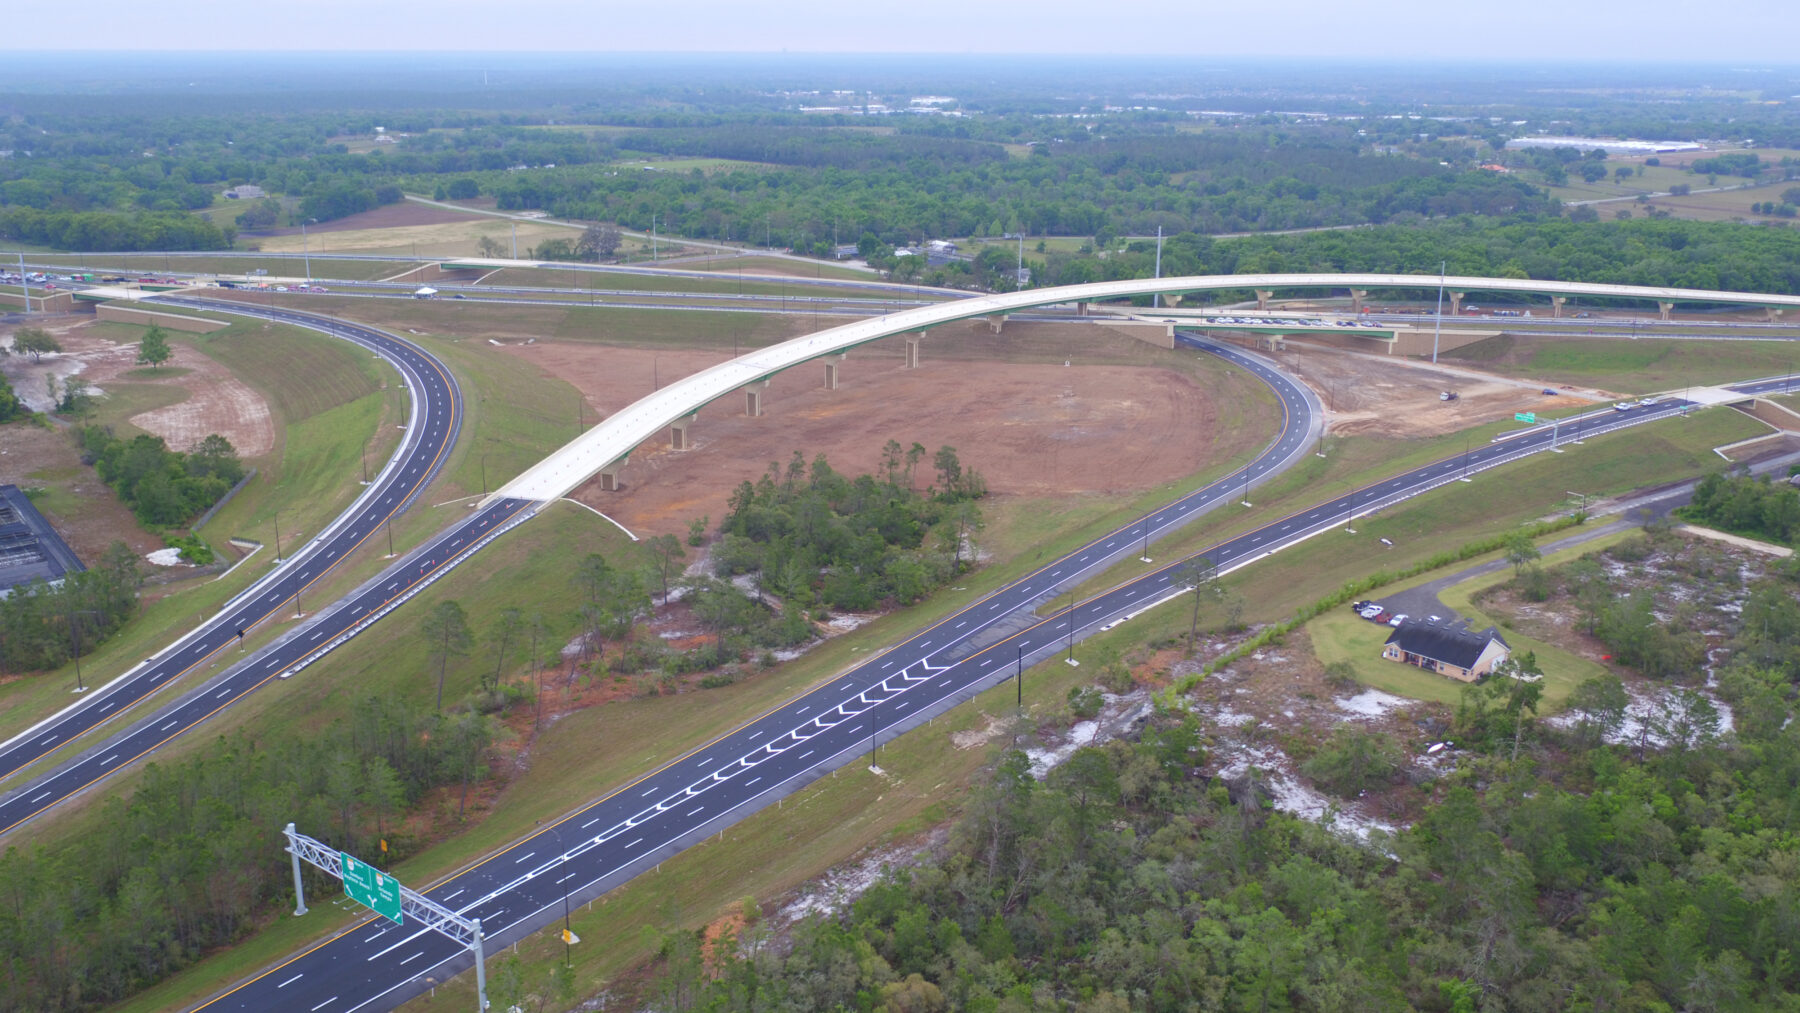 Broad overview of new sections of the Wekiva Parkway